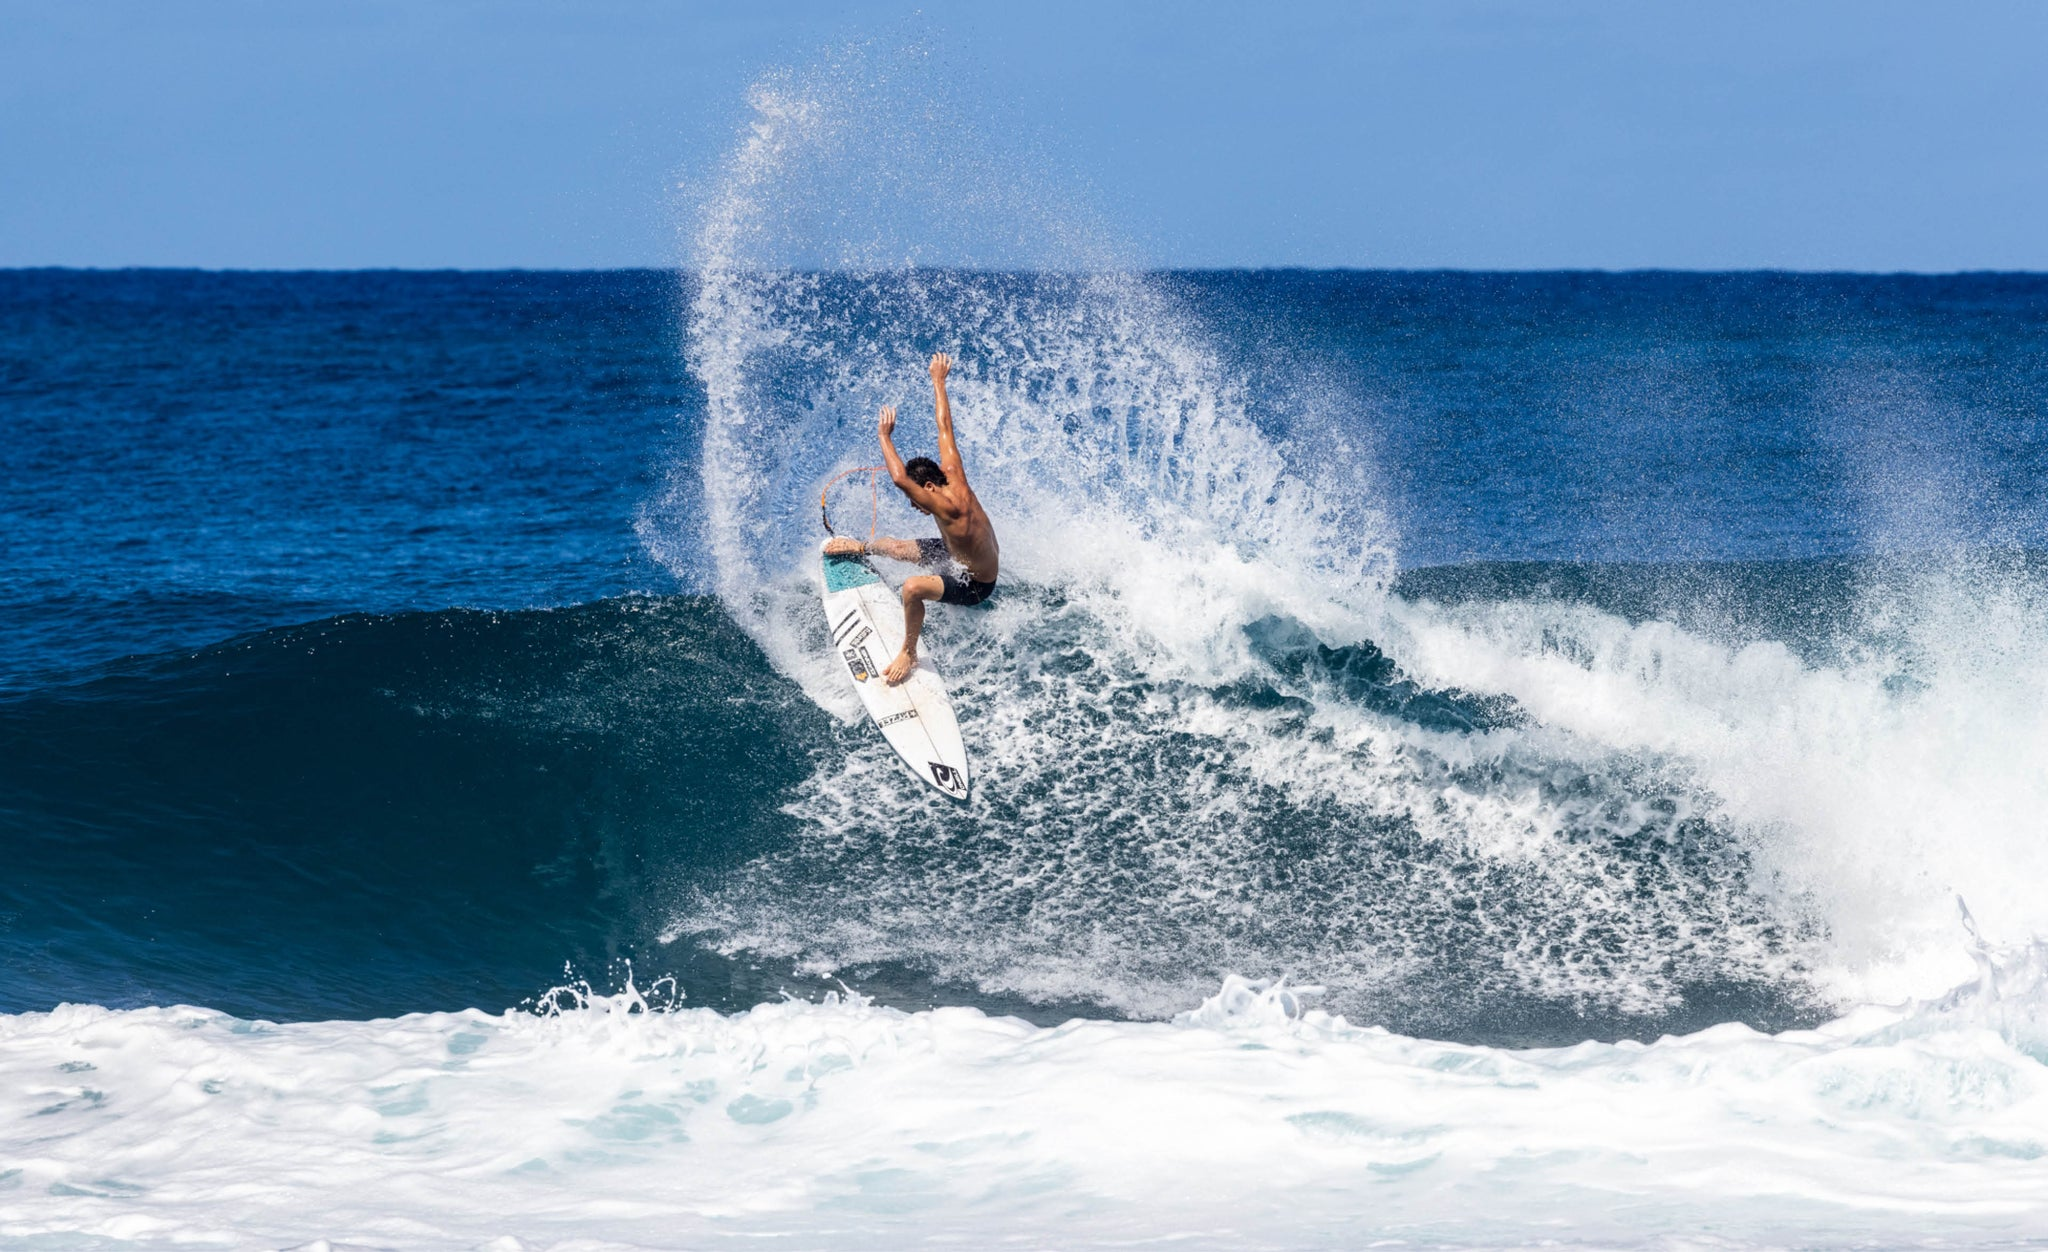 WATCH: GROWING UP AT PIPELINE WITH THATCHER JOHNSON